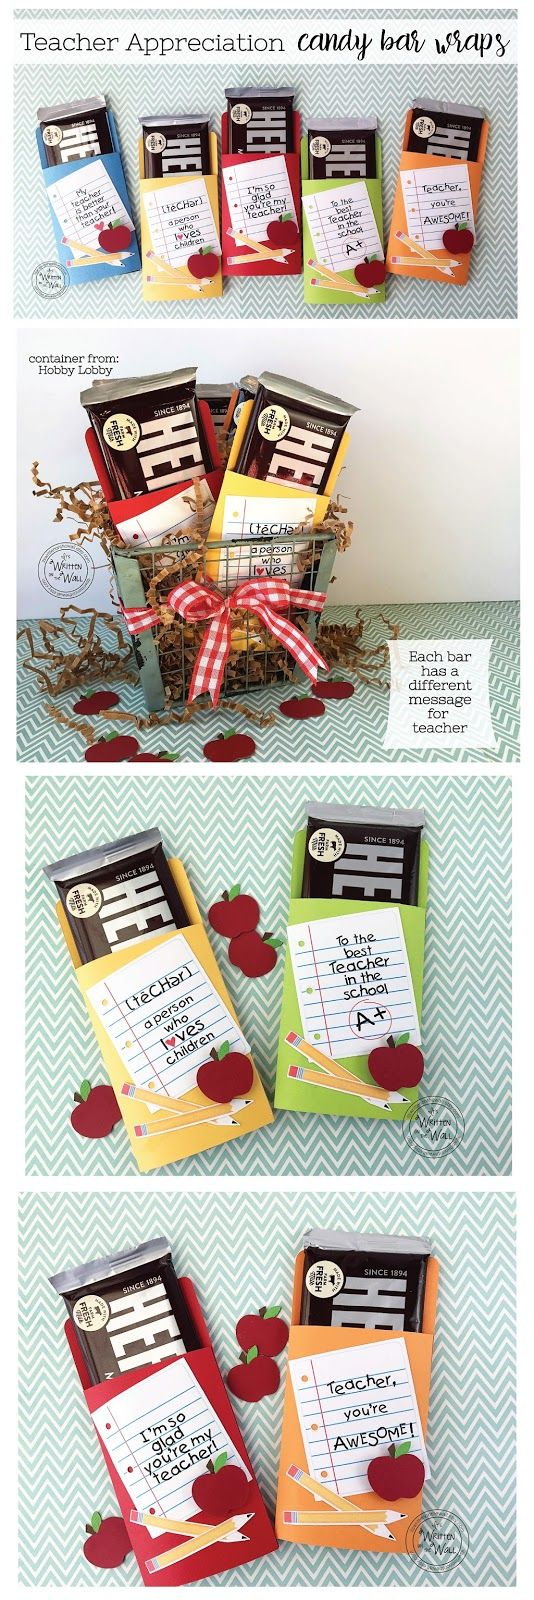 Sweets for the Teacher-Hershey Chocolate Bars all wrapped up in 5 different colors and 5 messages. Teacher Appreciation Gifts